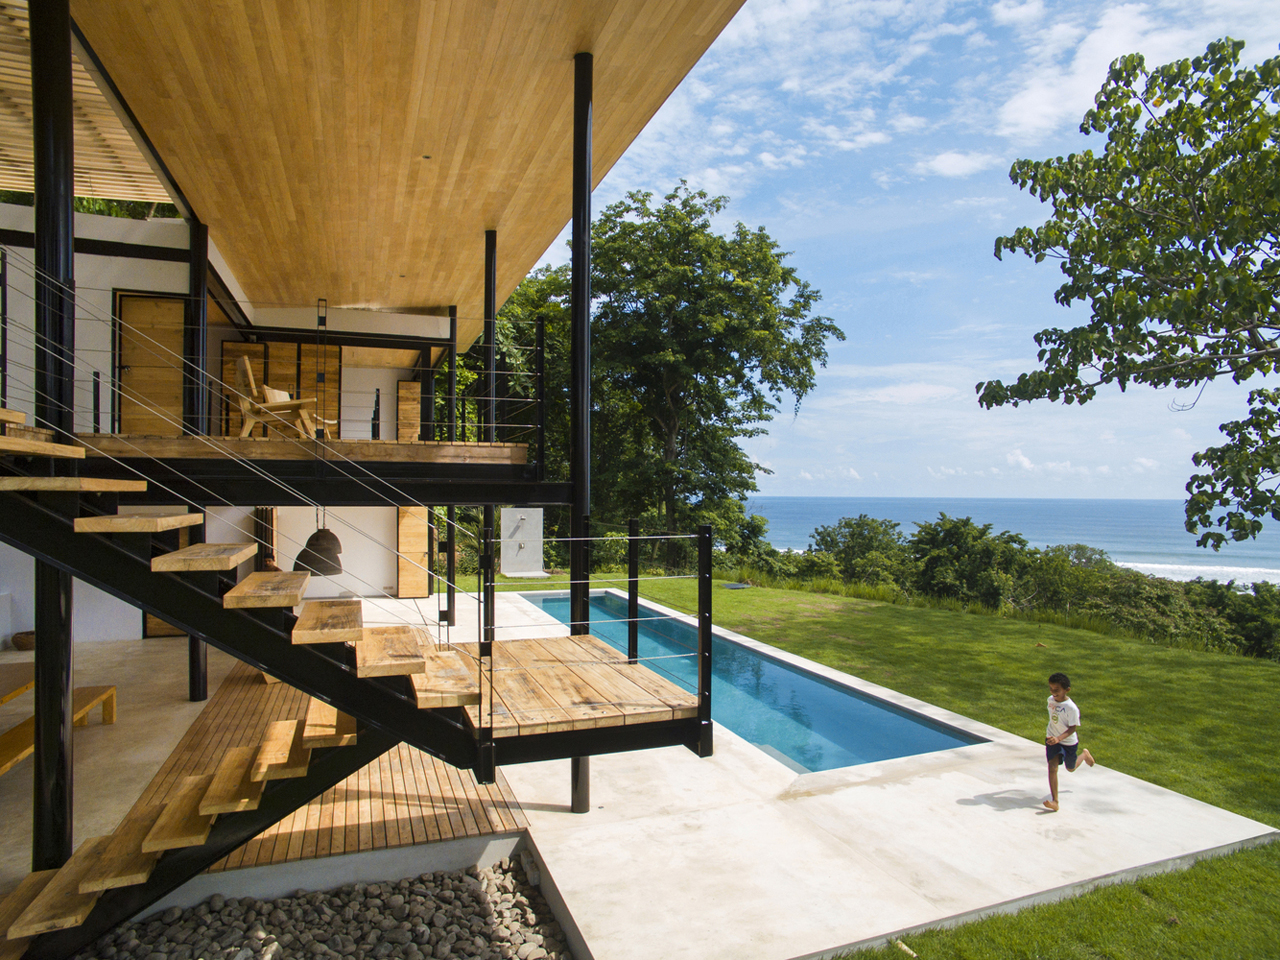 Related Posts Hillside Floating House In Costa Rica